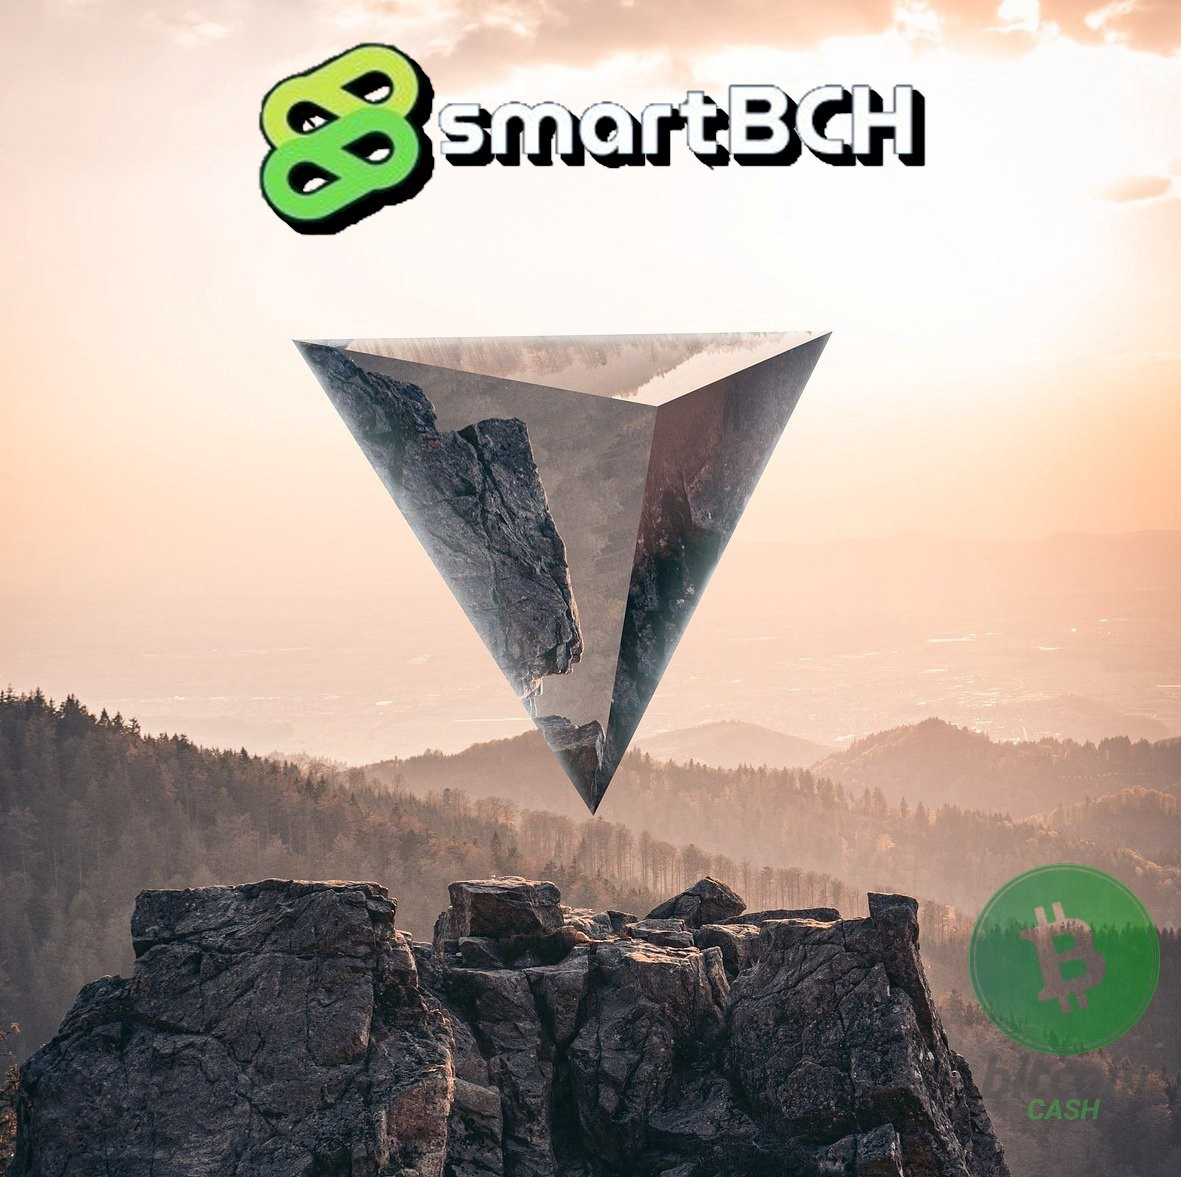 The image depicts a reverse glass pyramid on top of a rocky mountain with hills and the sun in the background. I have added the SmartBCH logo at the top of the image, and the BCH logo at the right bottom corner.